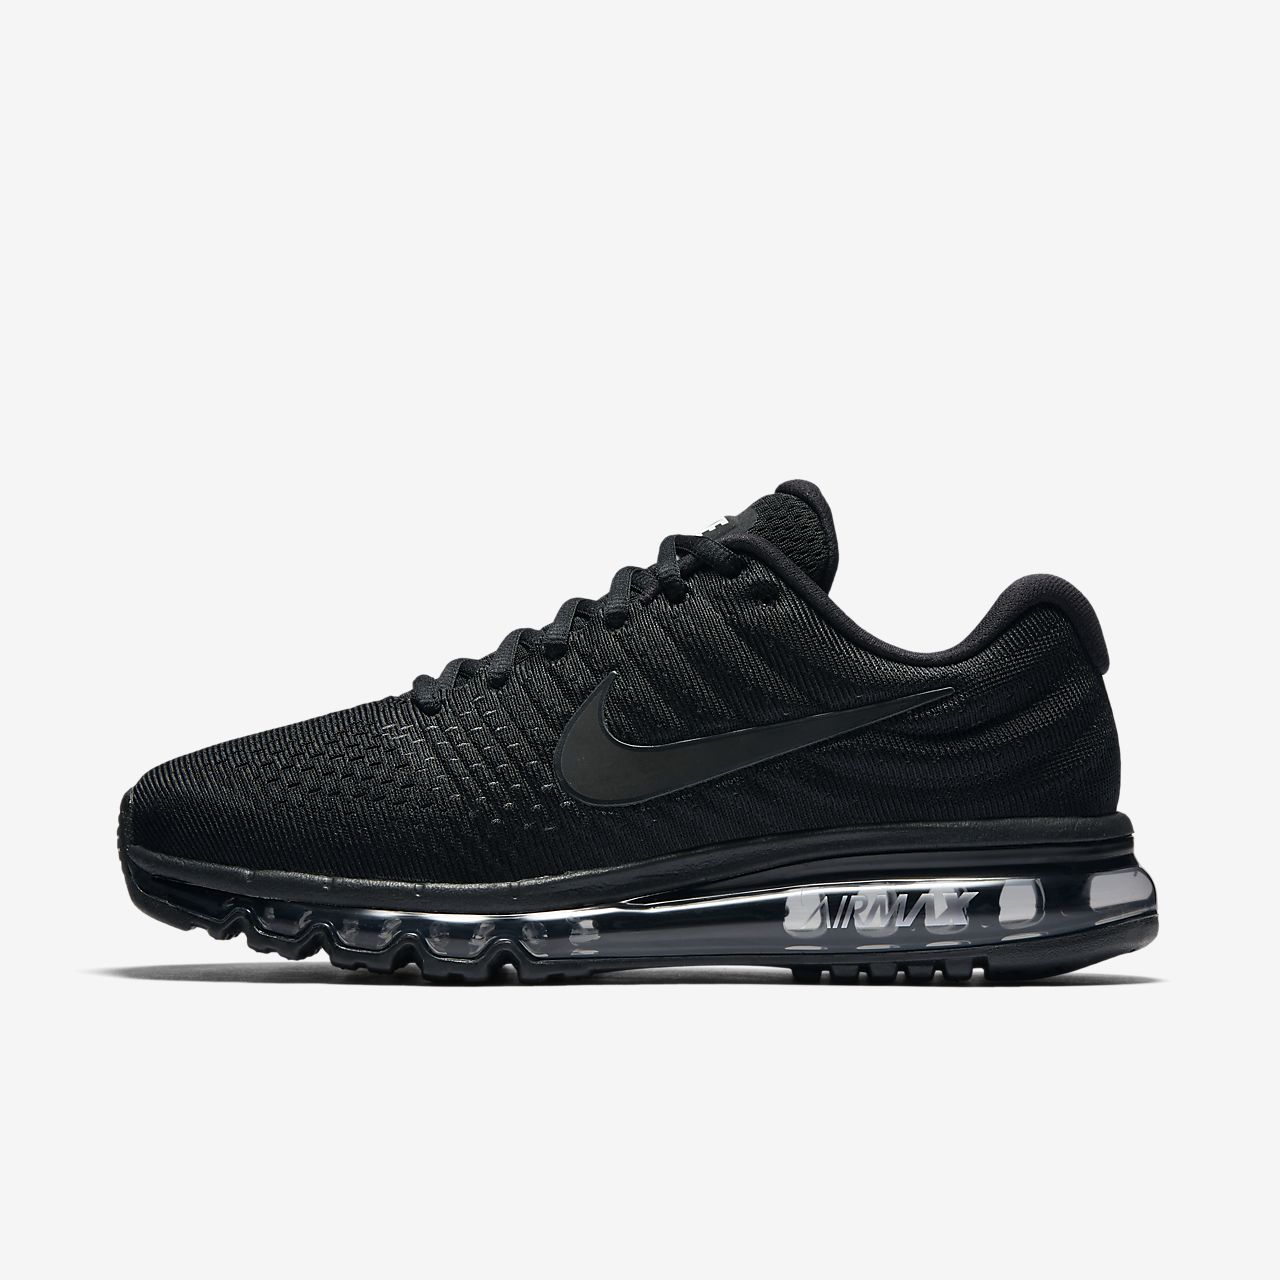 Airmax nike shoes nike air max 2017 QUTJCYQ